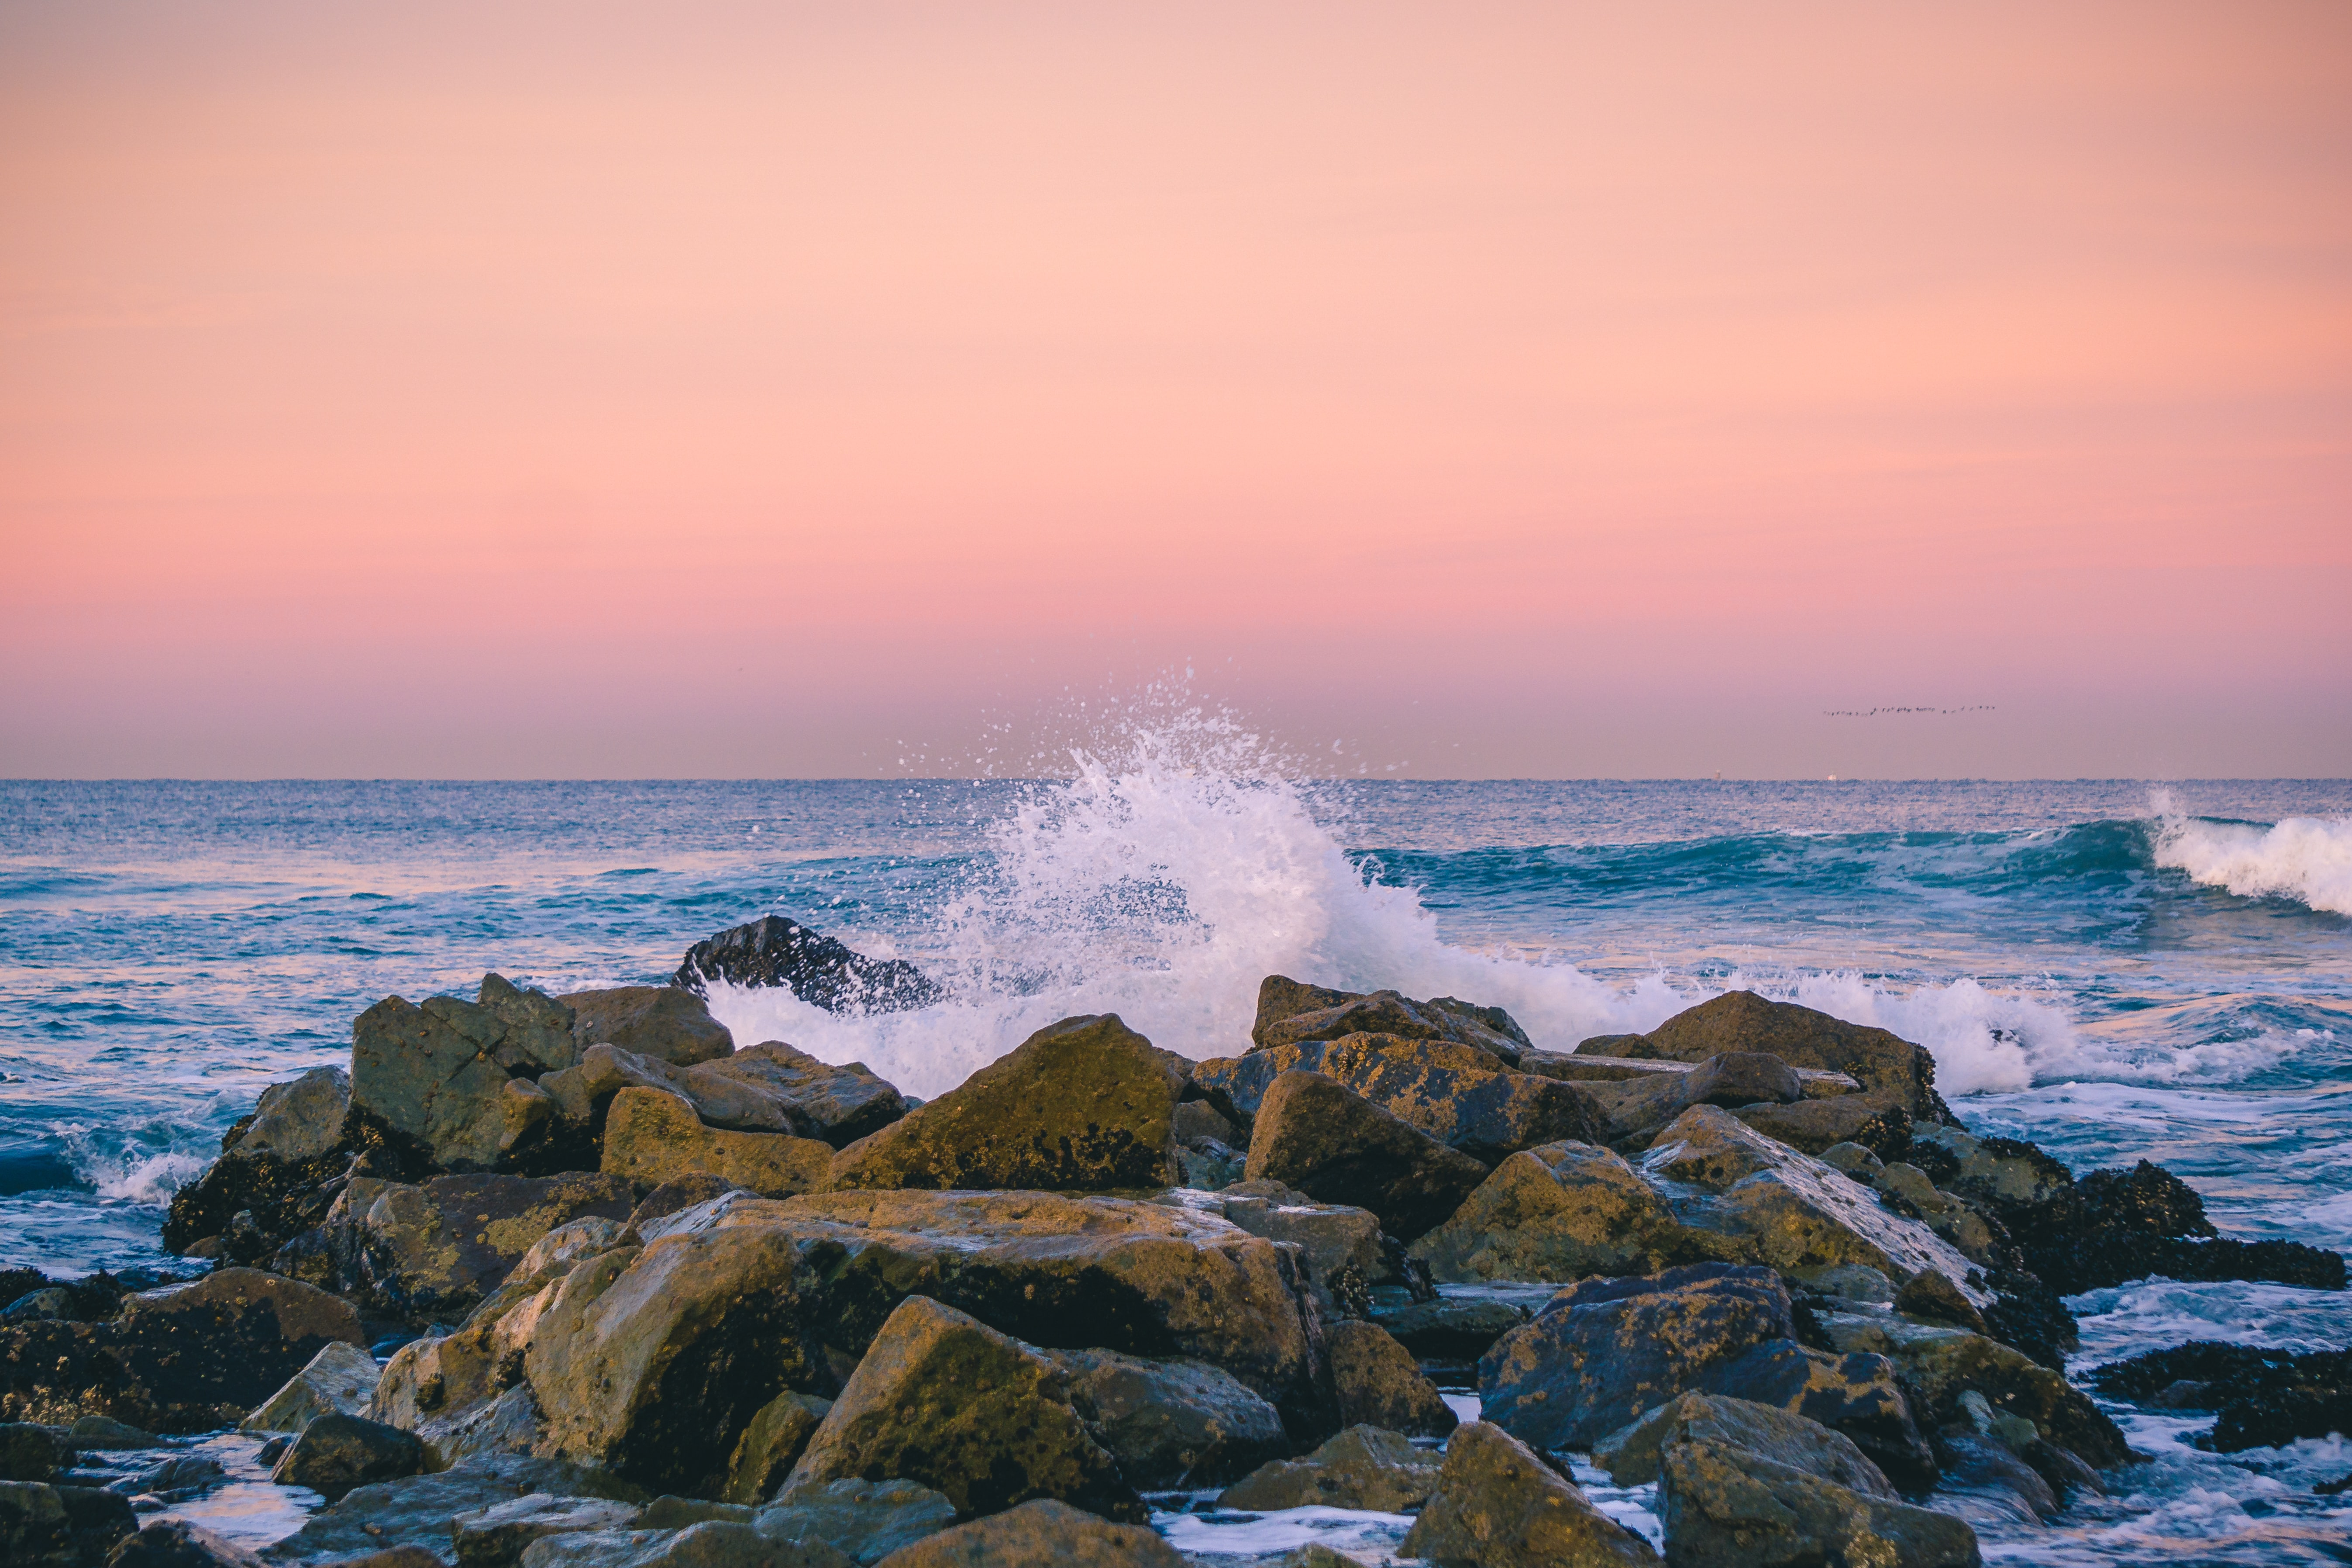 rocks surrounded by ocean during sunset